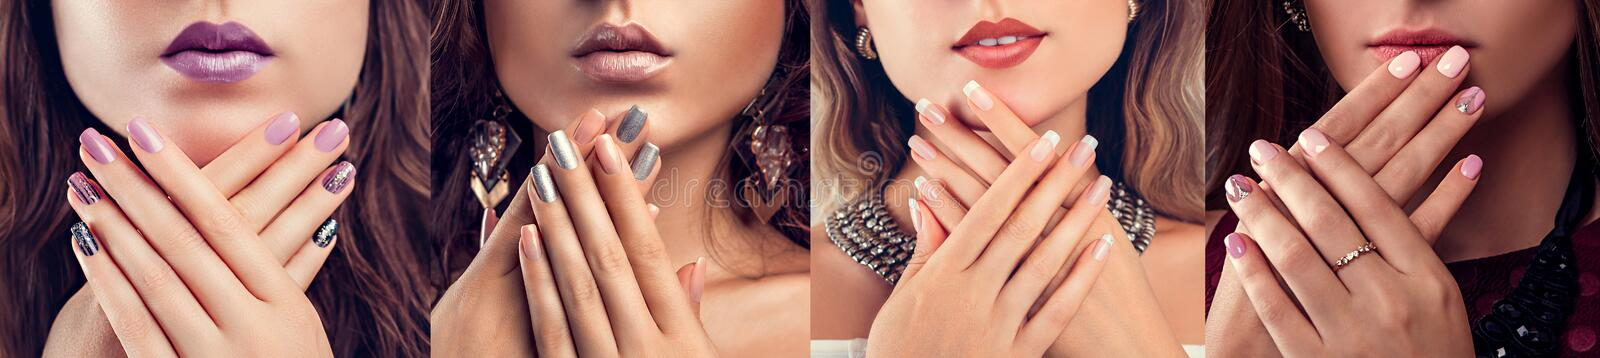 Nail art and design. Beauty fashion model with different make-up and manicure wearing jewelry. Set of looks. Nail art and design. Beauty fashion model with royalty free stock photos